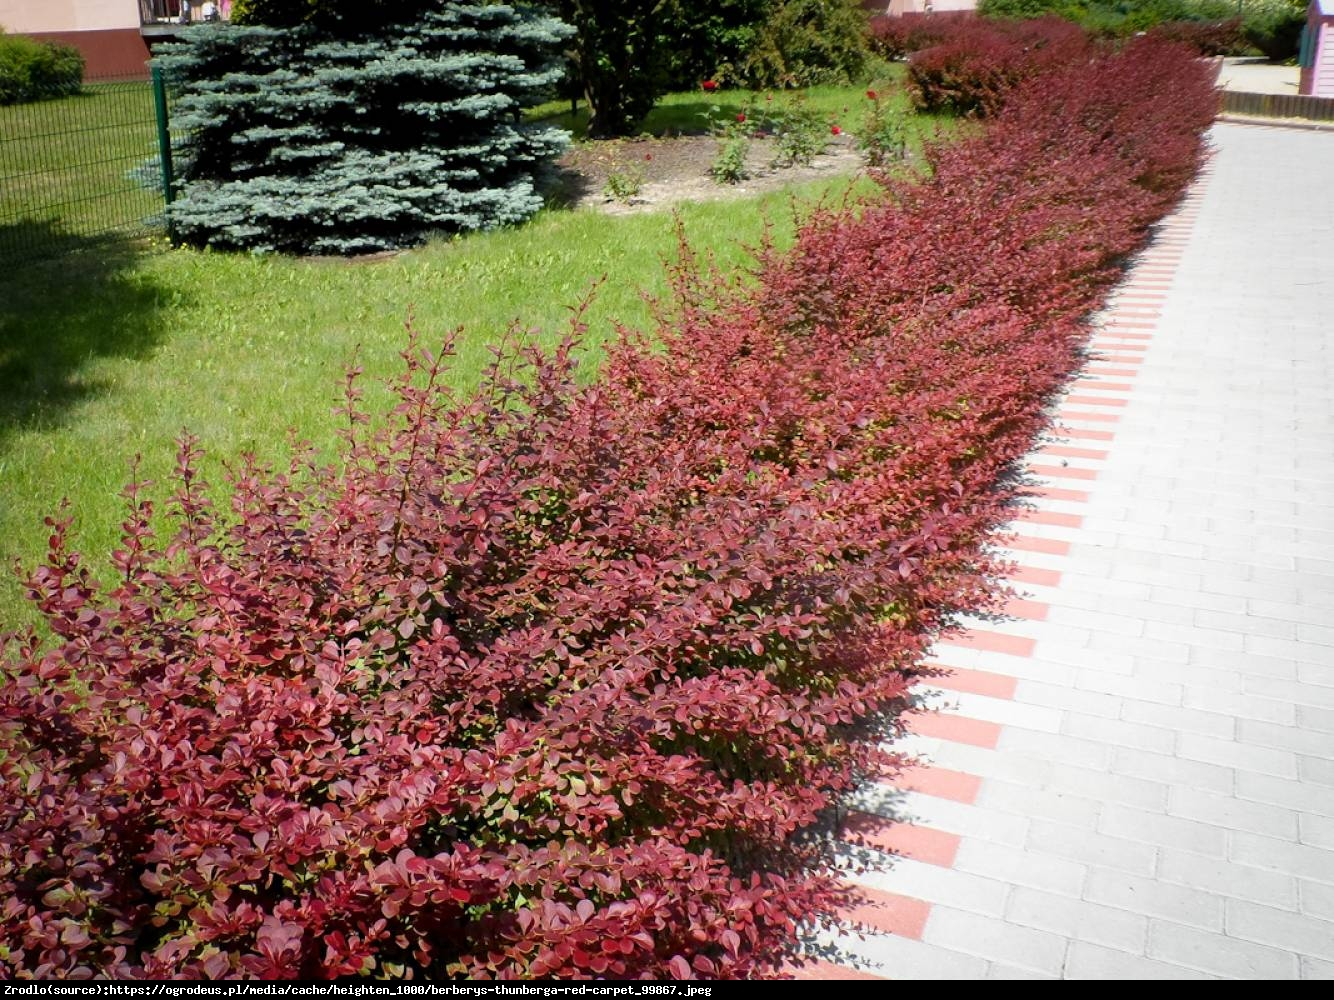 Berberys Red Carpet - Berberis thunbergii Red Carpet